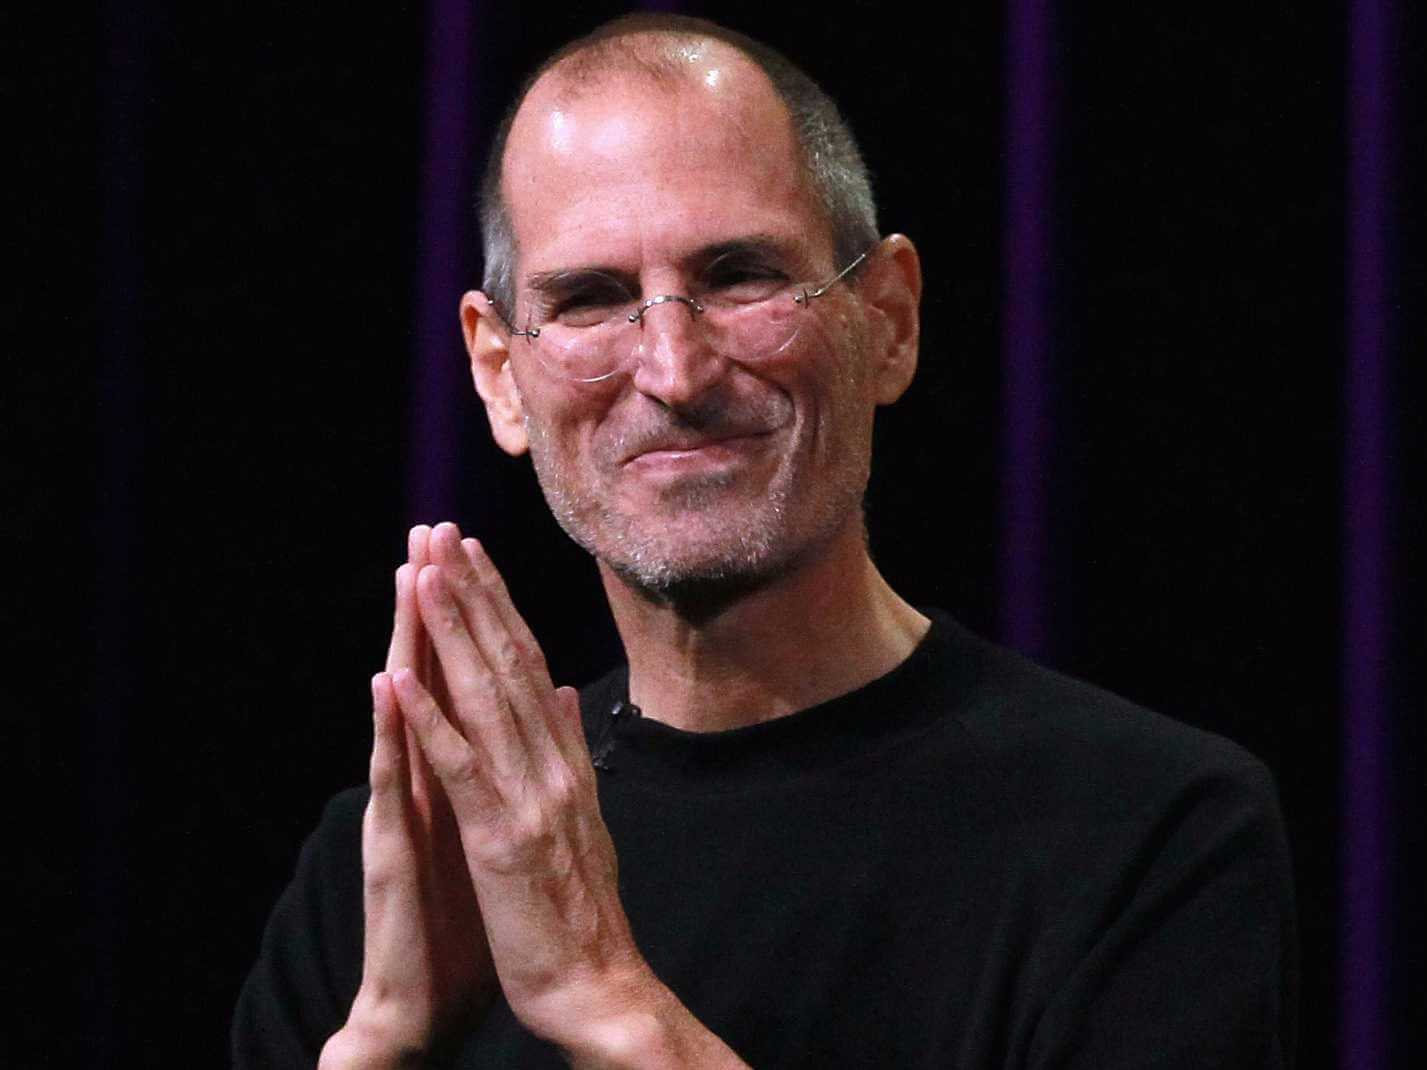 The new steve jobs documentary is a blistering takedown that is deeply unflattering